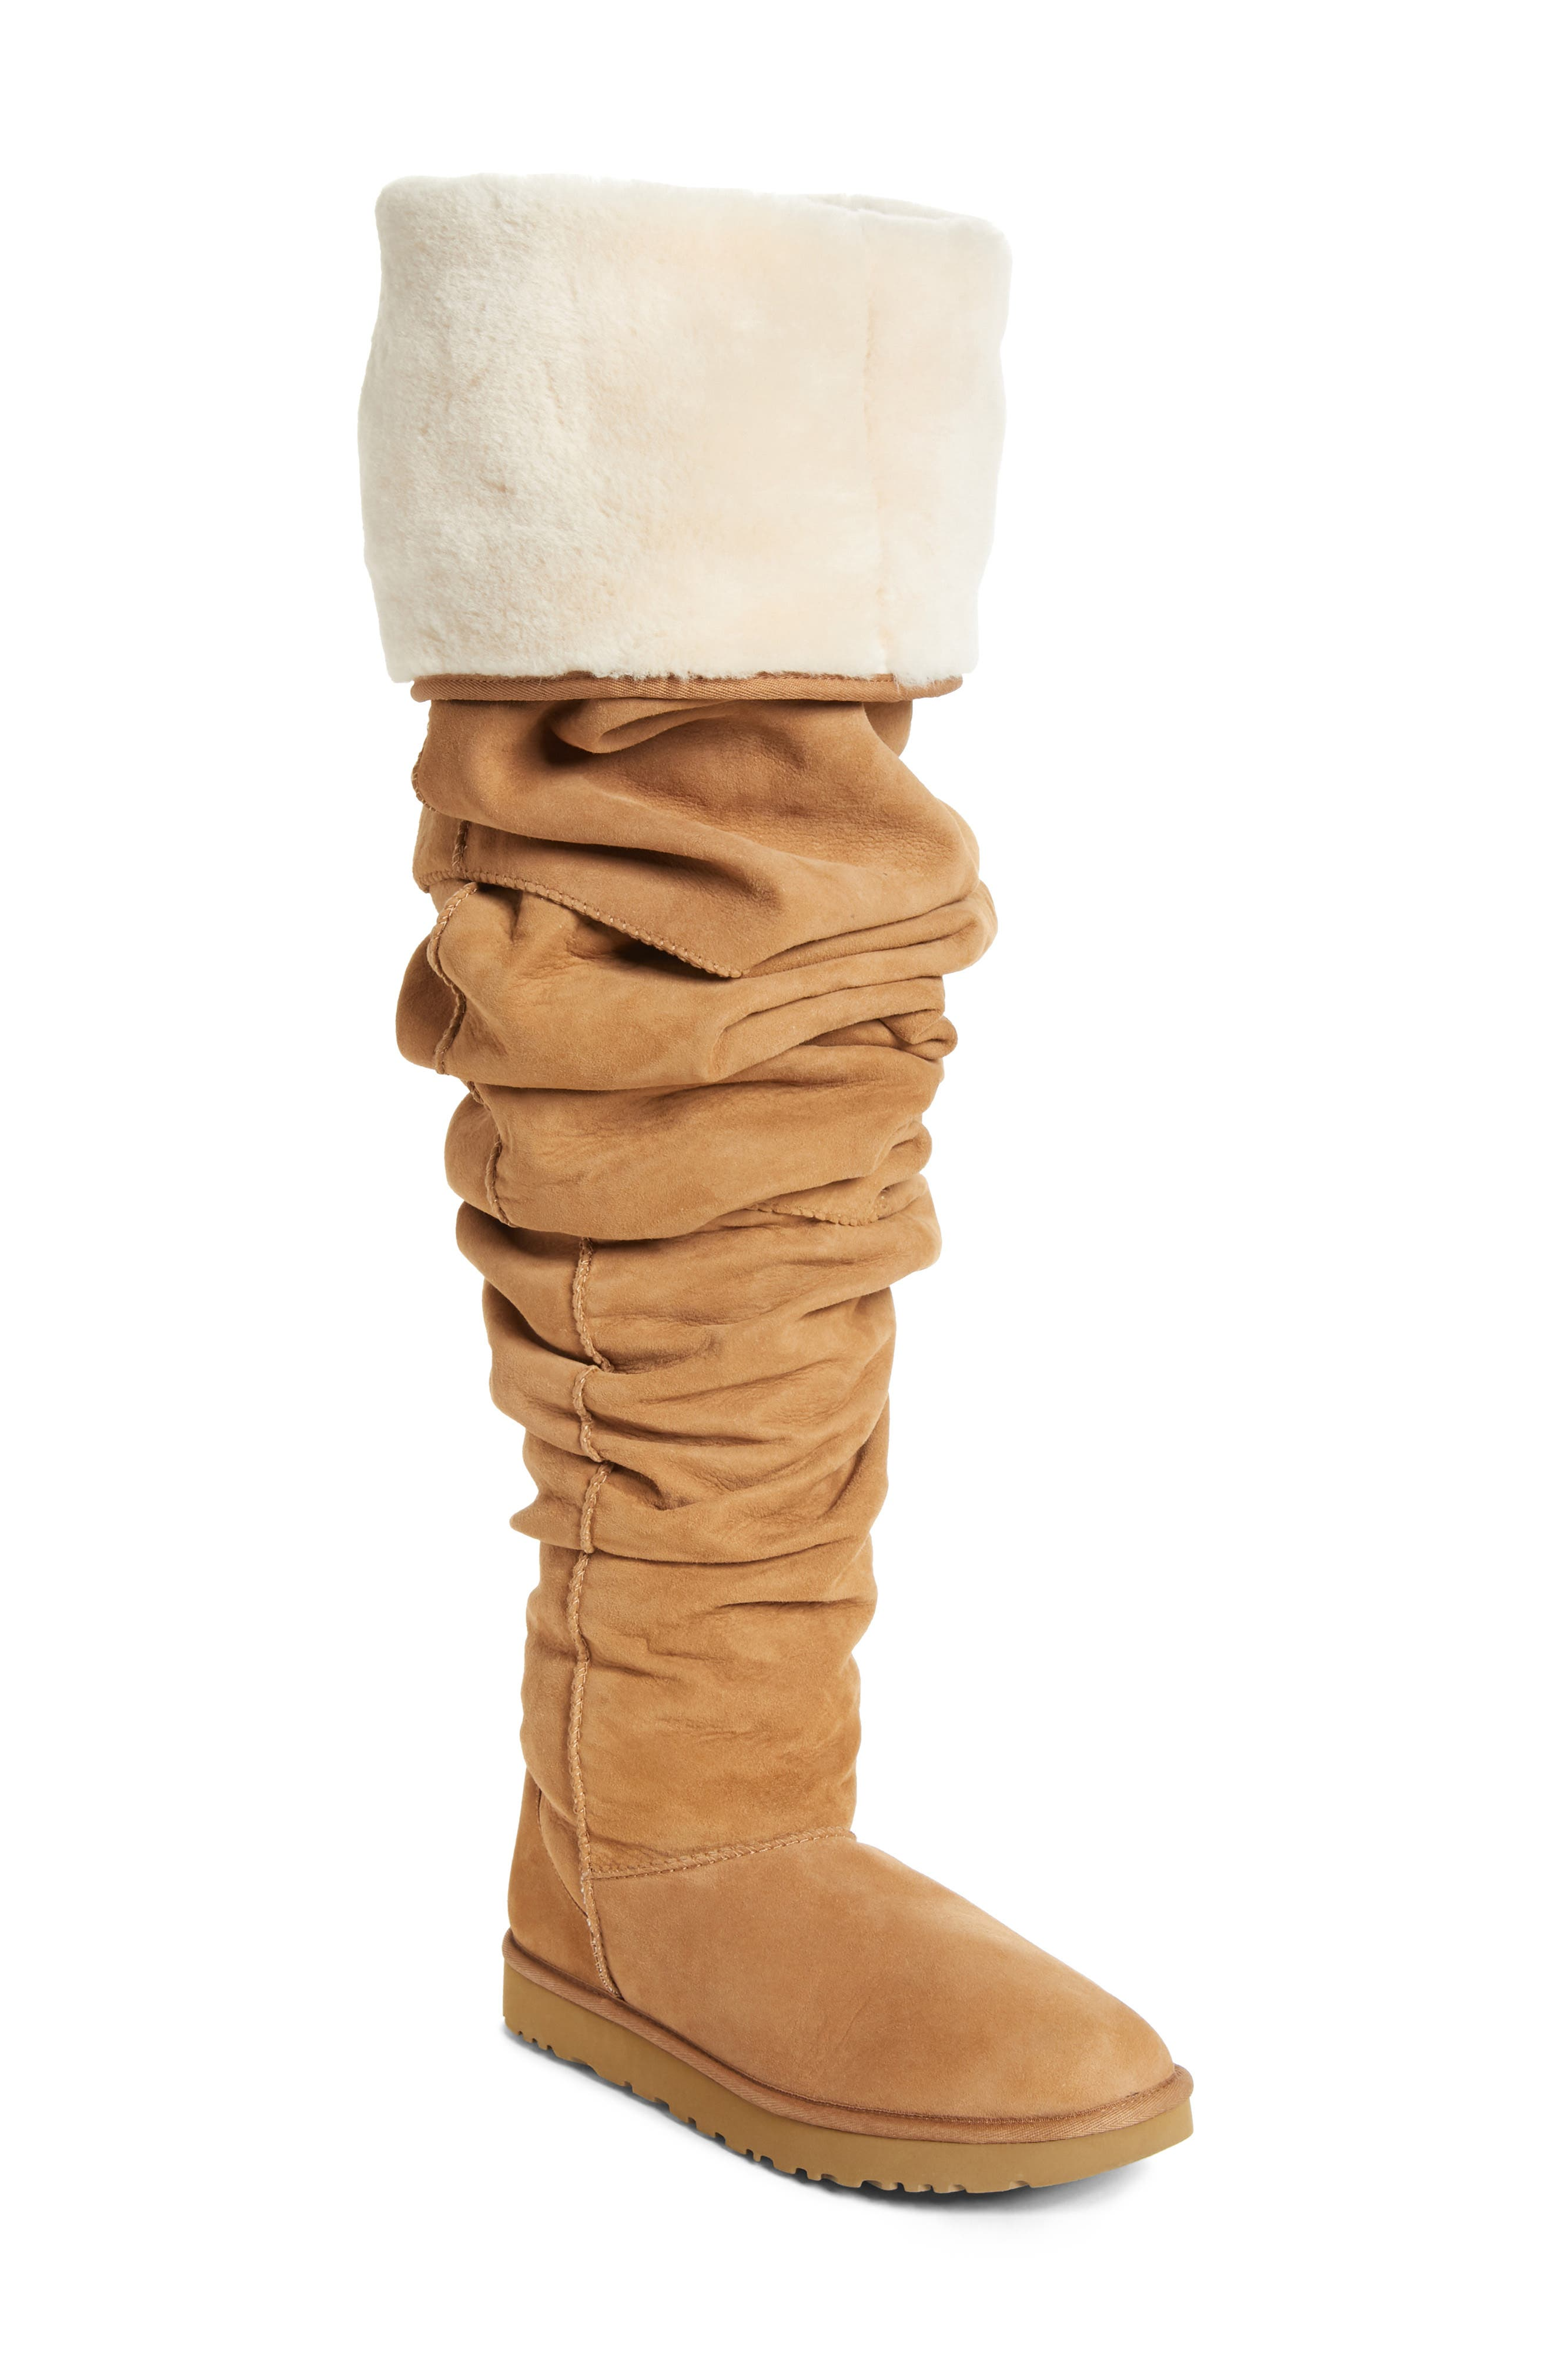 Y/PROJECT x UGG<sup>®</sup> Thigh High Boot, Main, color, 200